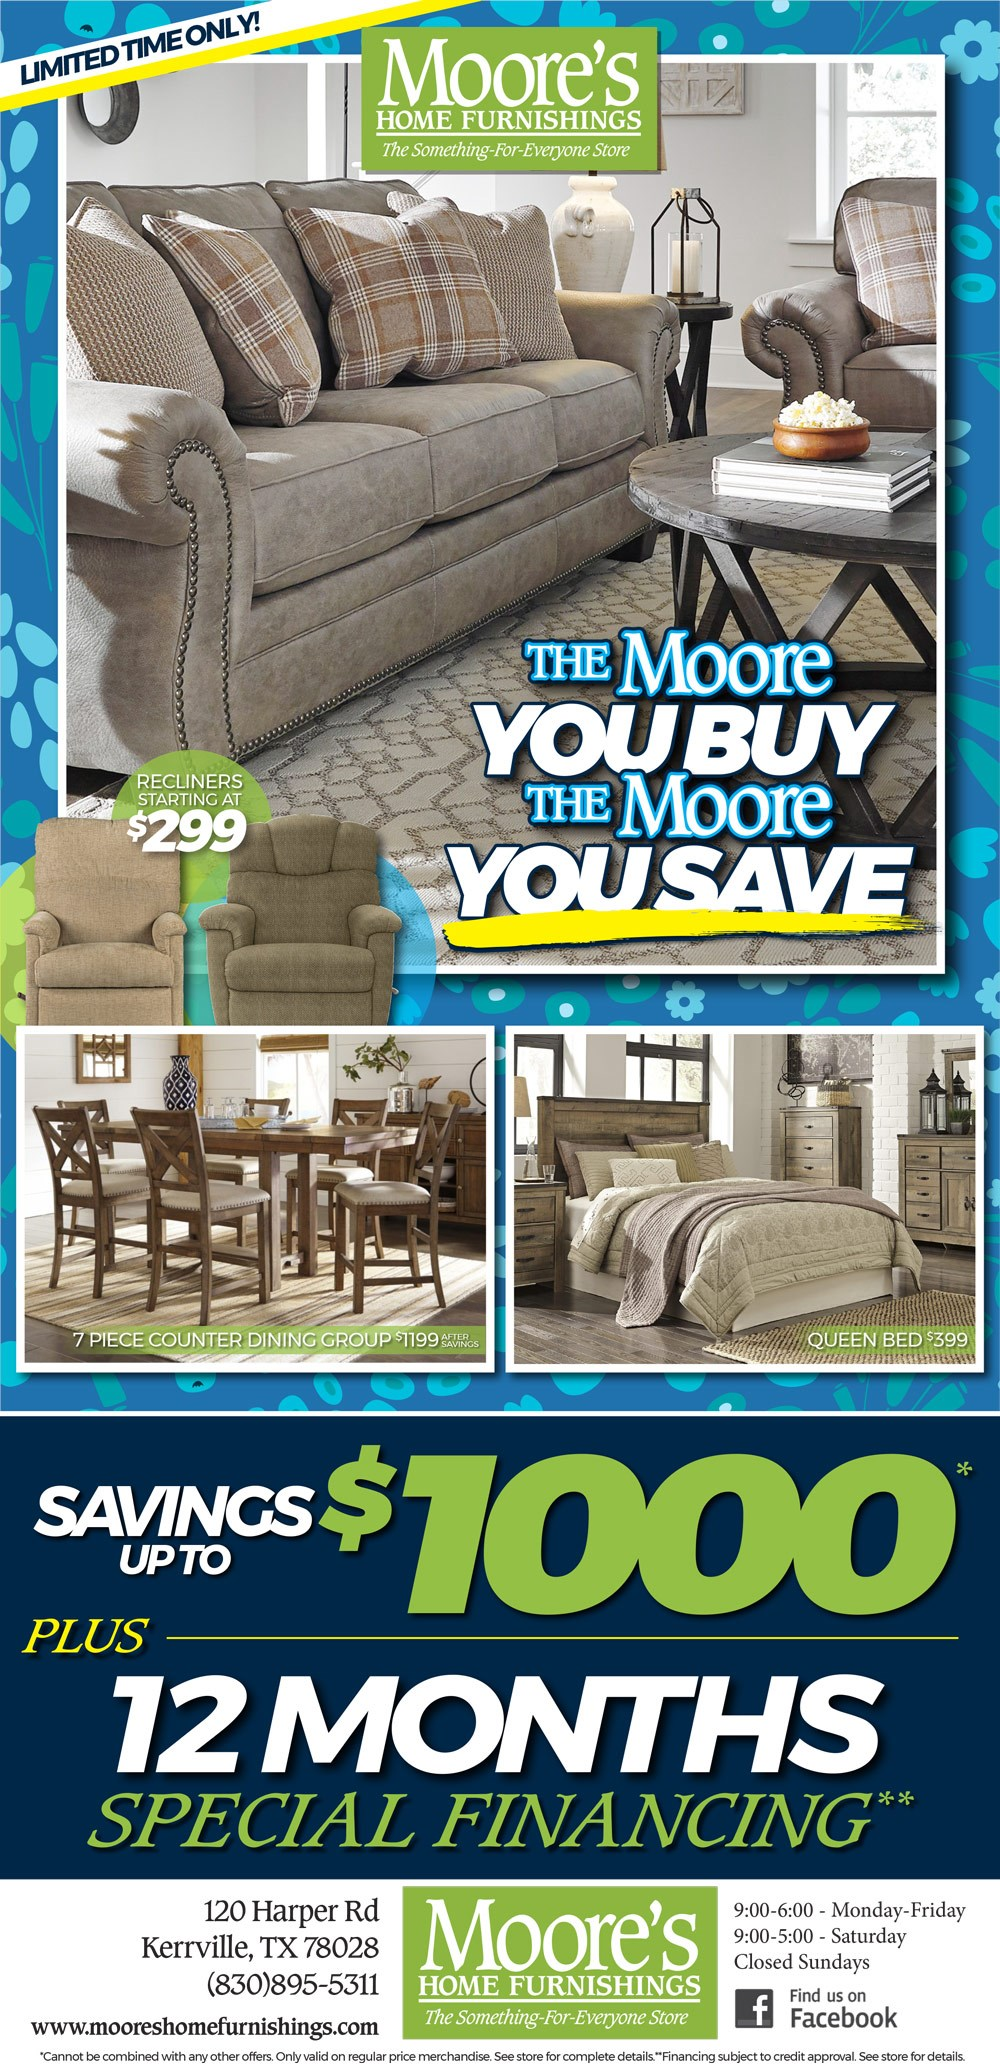 Couches Promotion Furniture Deals Moore S Home Furnishings Kerrville